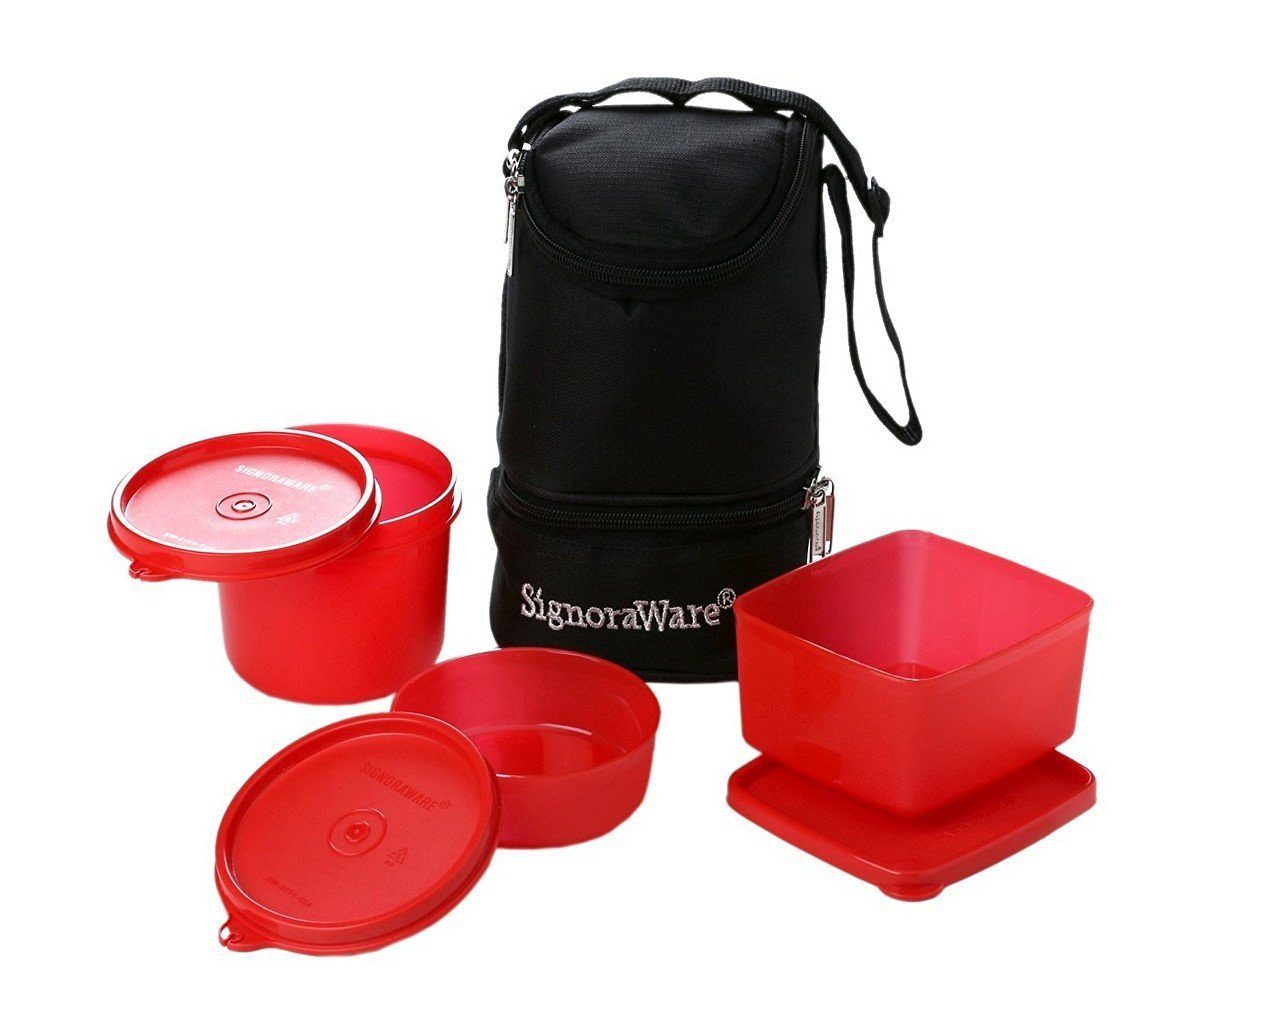 Signoraware Trio Plastic Lunch Box with Bag, Deep Red